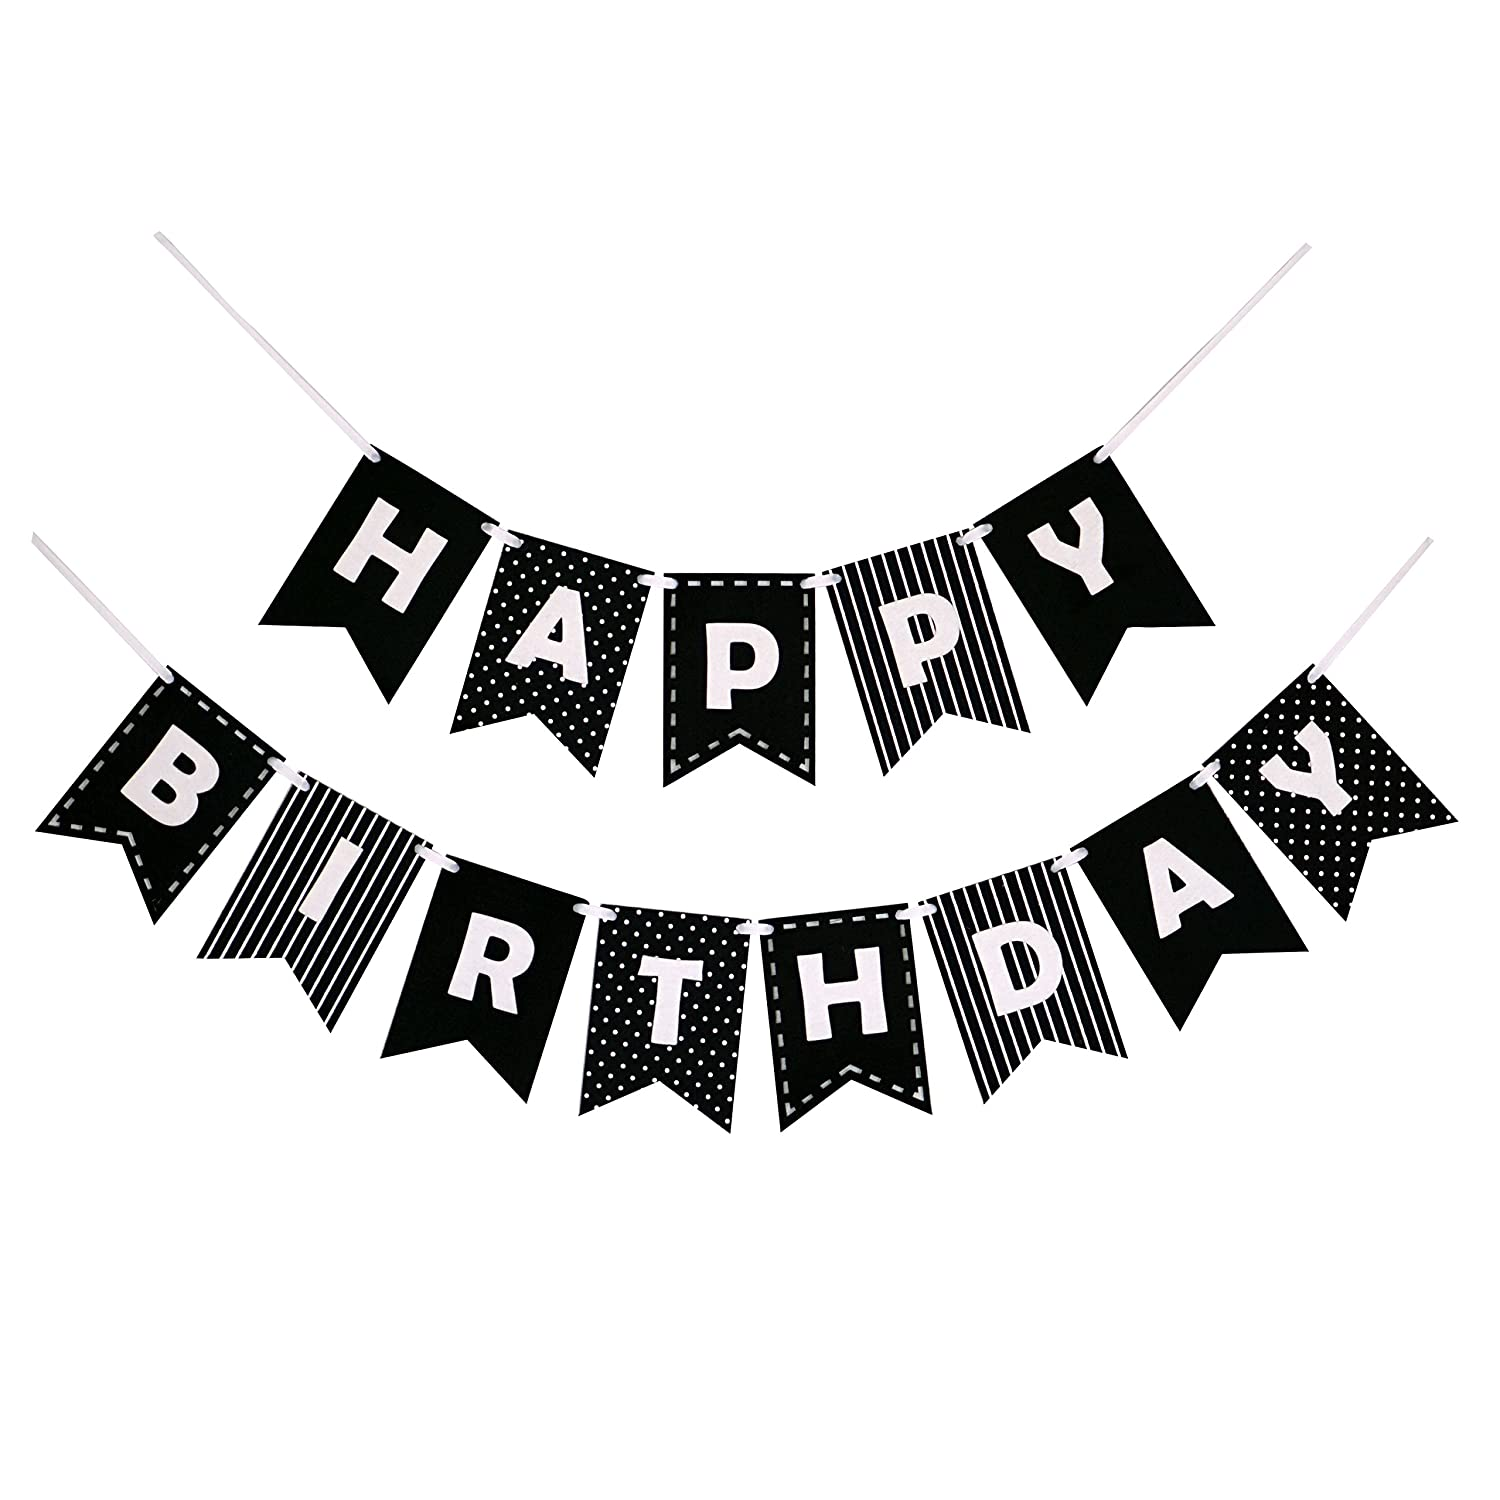 Amazon.com: Happy Birthday Banner Bunting Laser Cut Felt 60 inches wide - Black & White: Toys & Games